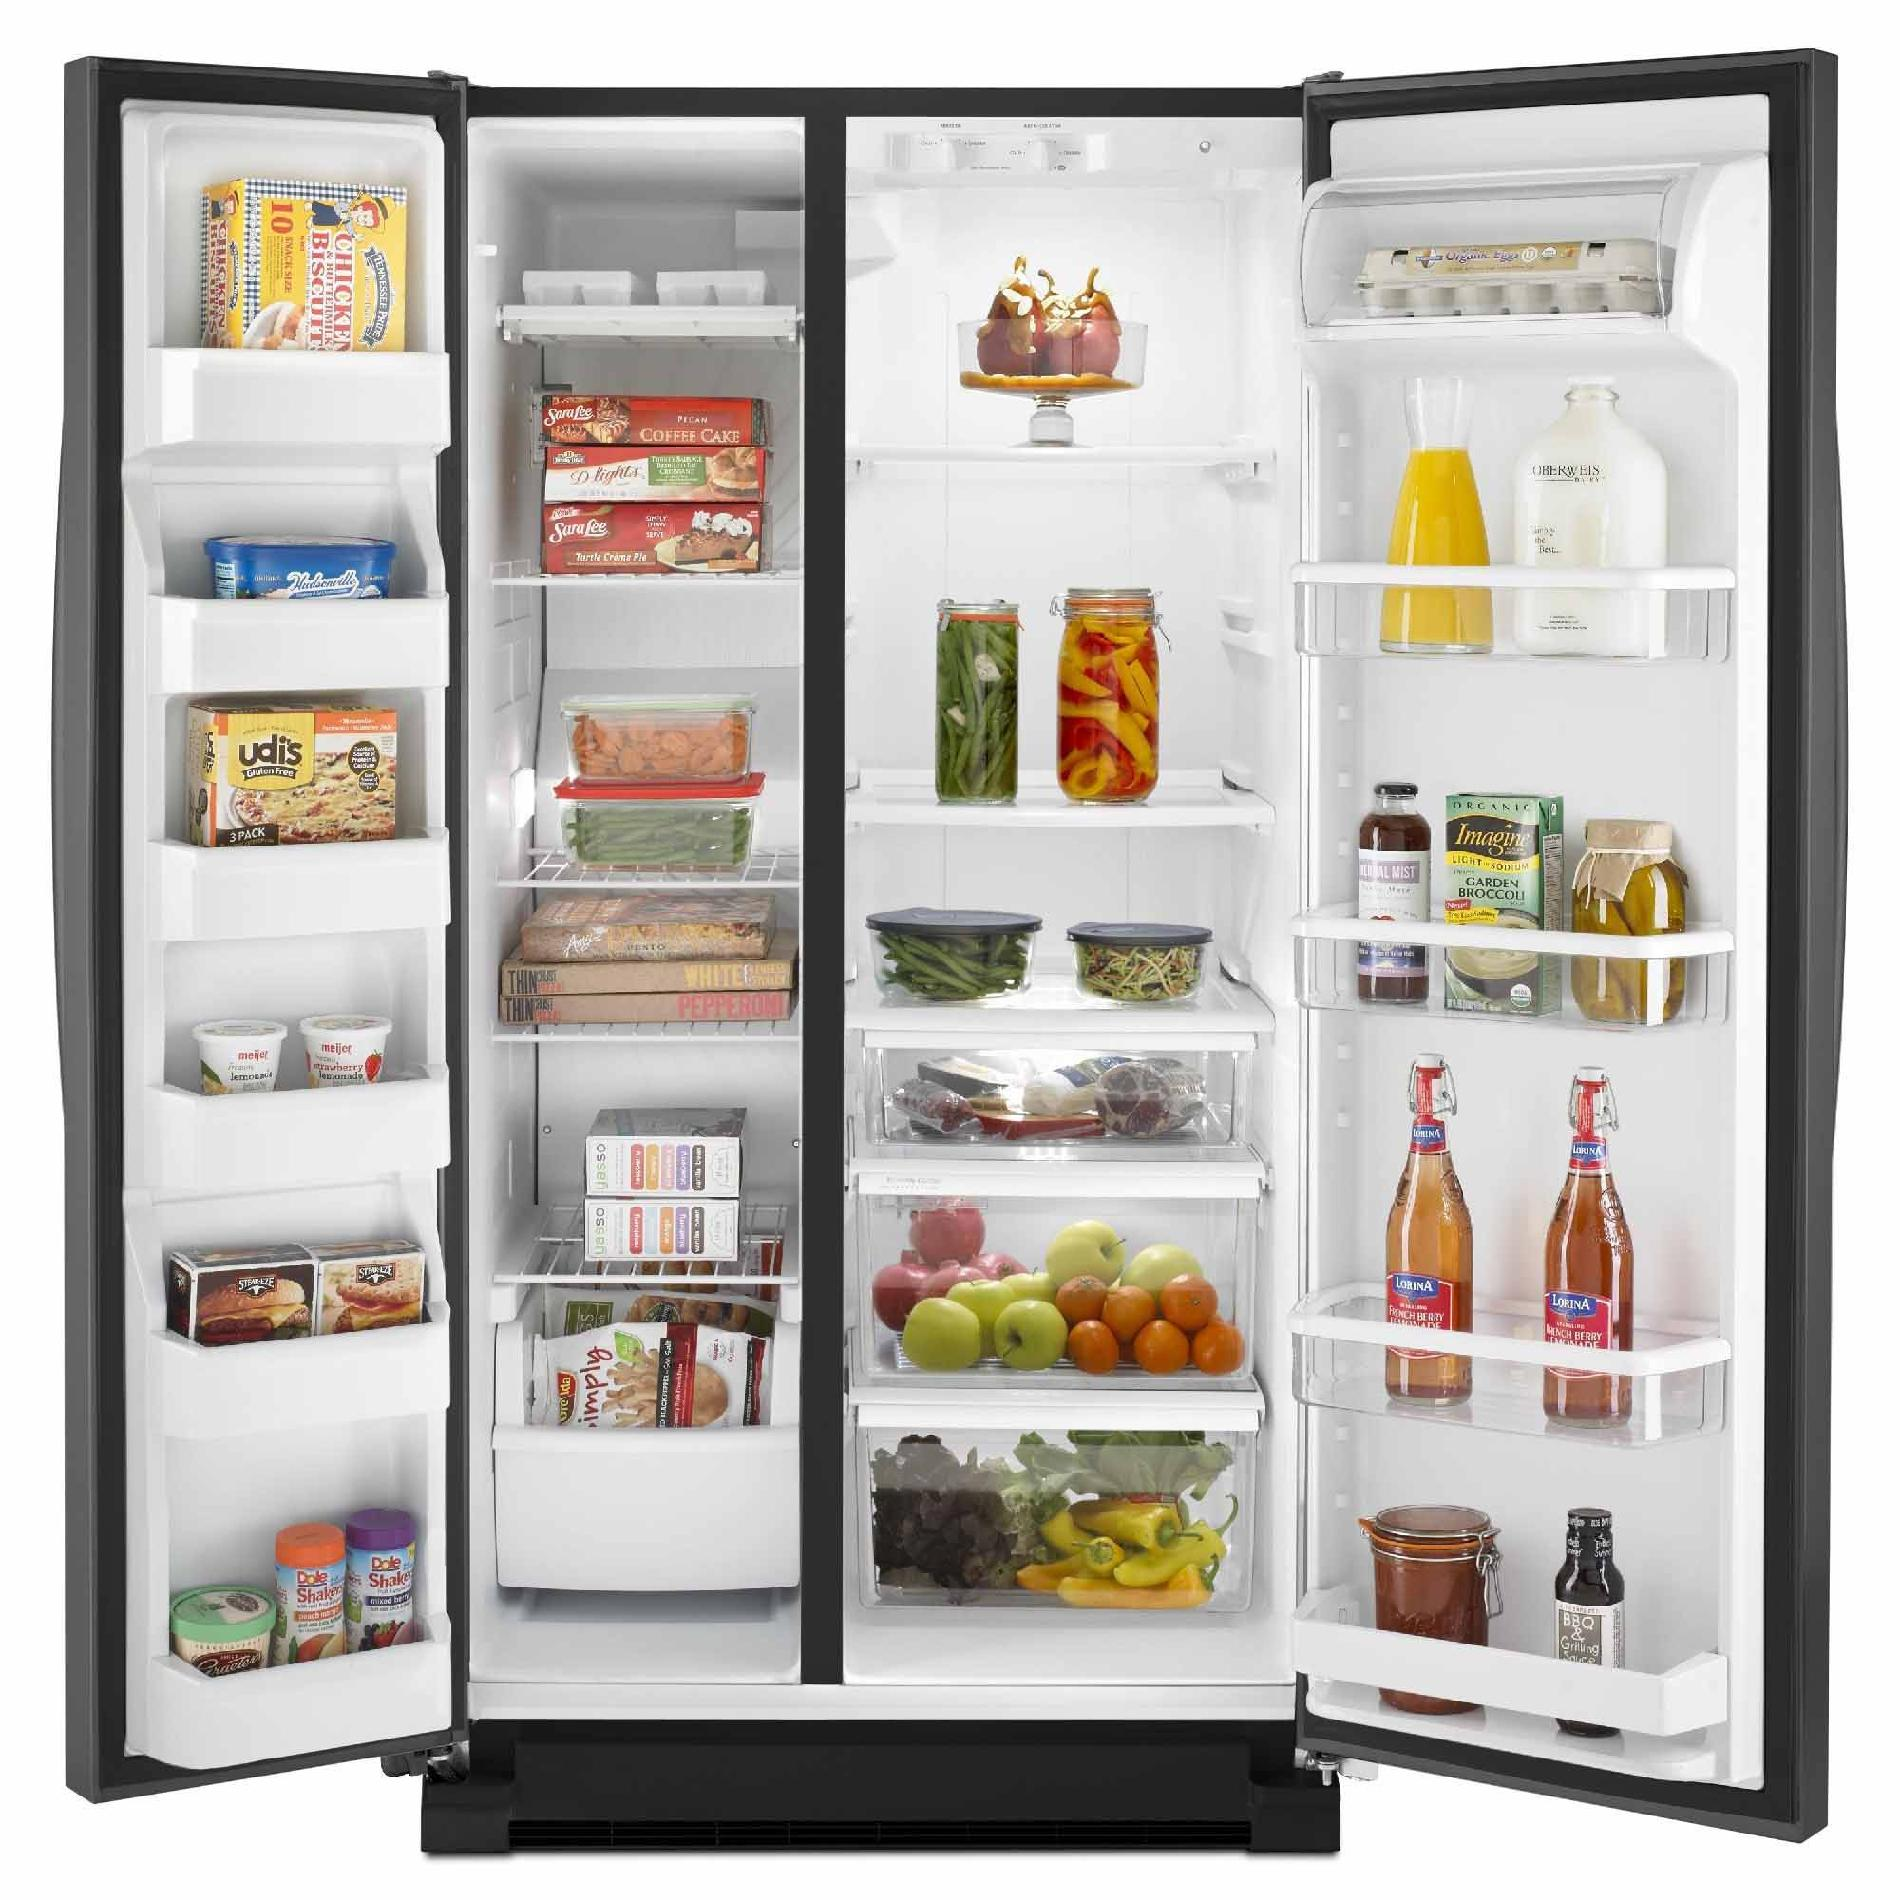 Whirlpool WRS325FNAE 24.9 cu. ft. Side-by-Side Refrigerator w/ Accu-Chill™ Temperature Management - Black